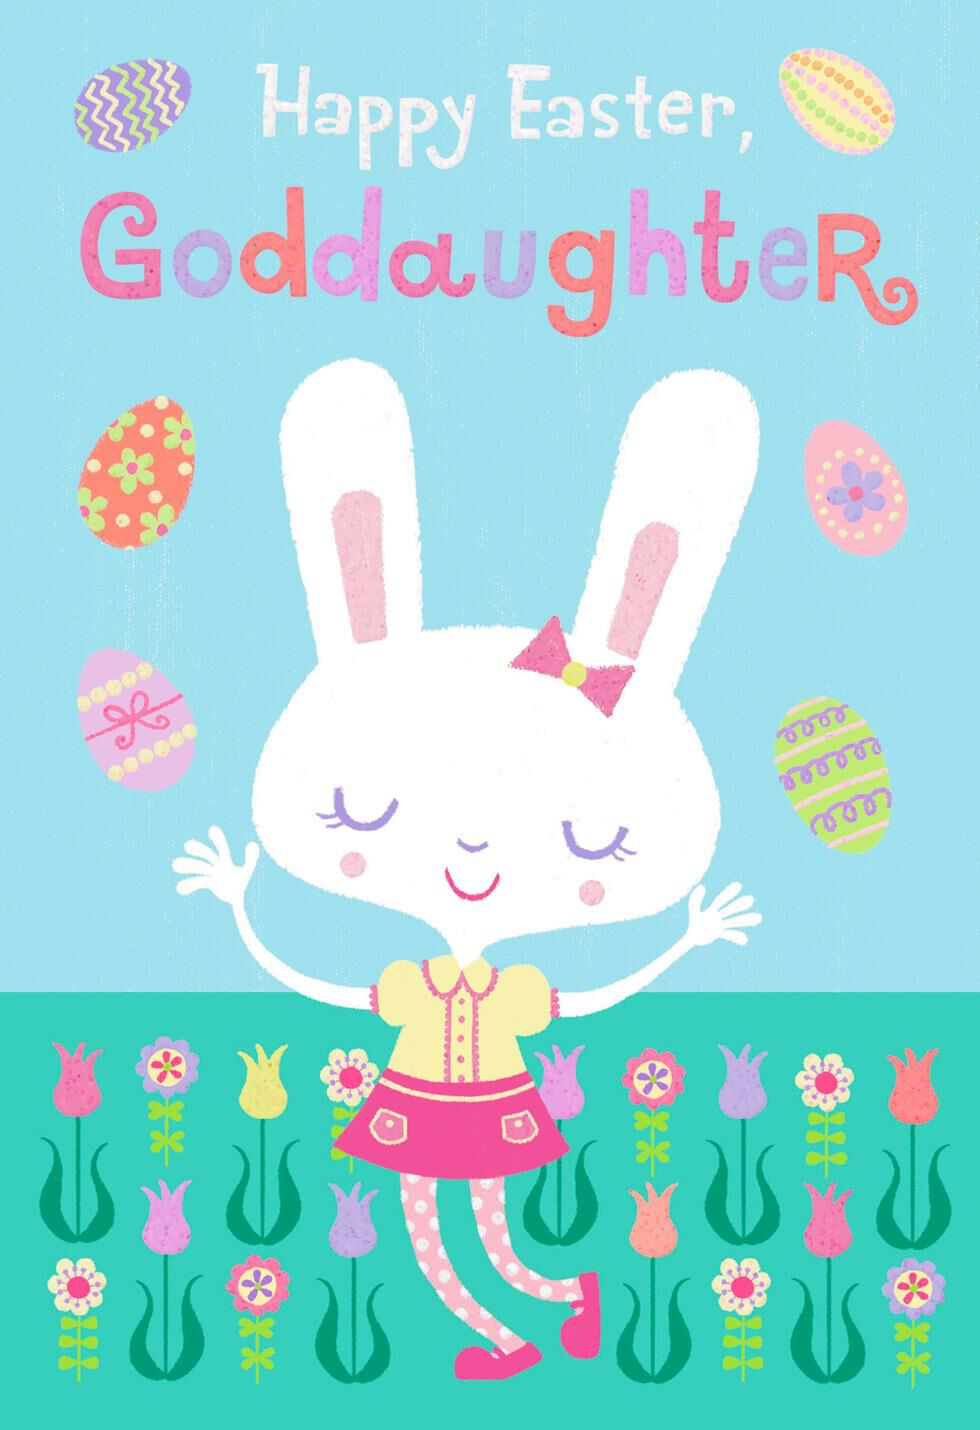 Goddaughter flowers and eggs easter card greeting cards hallmark negle Gallery